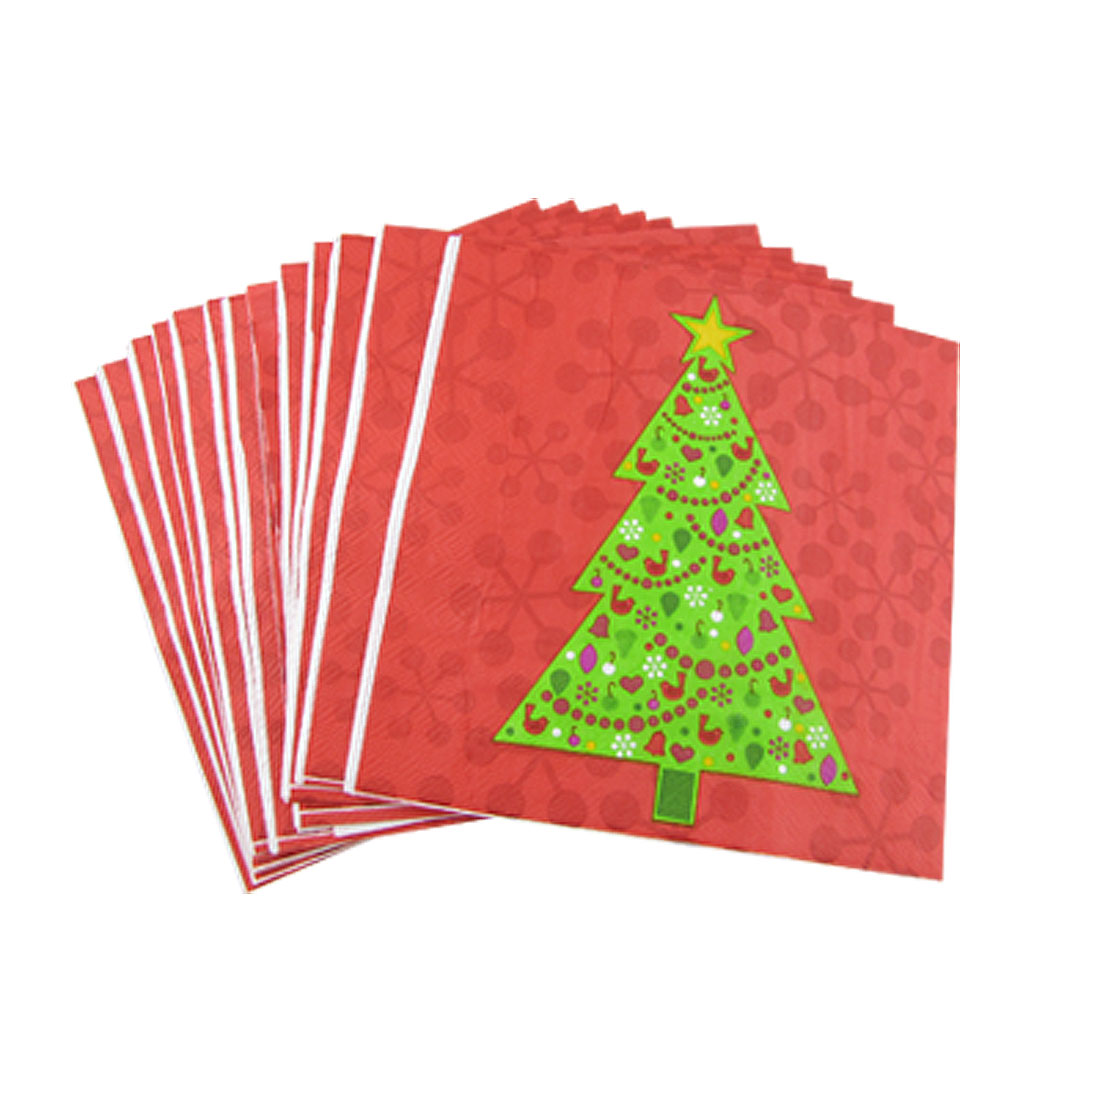 20 Pcs Green Christmas Tree Print Red Paper Dinner Serviettes Napkins 12.9""